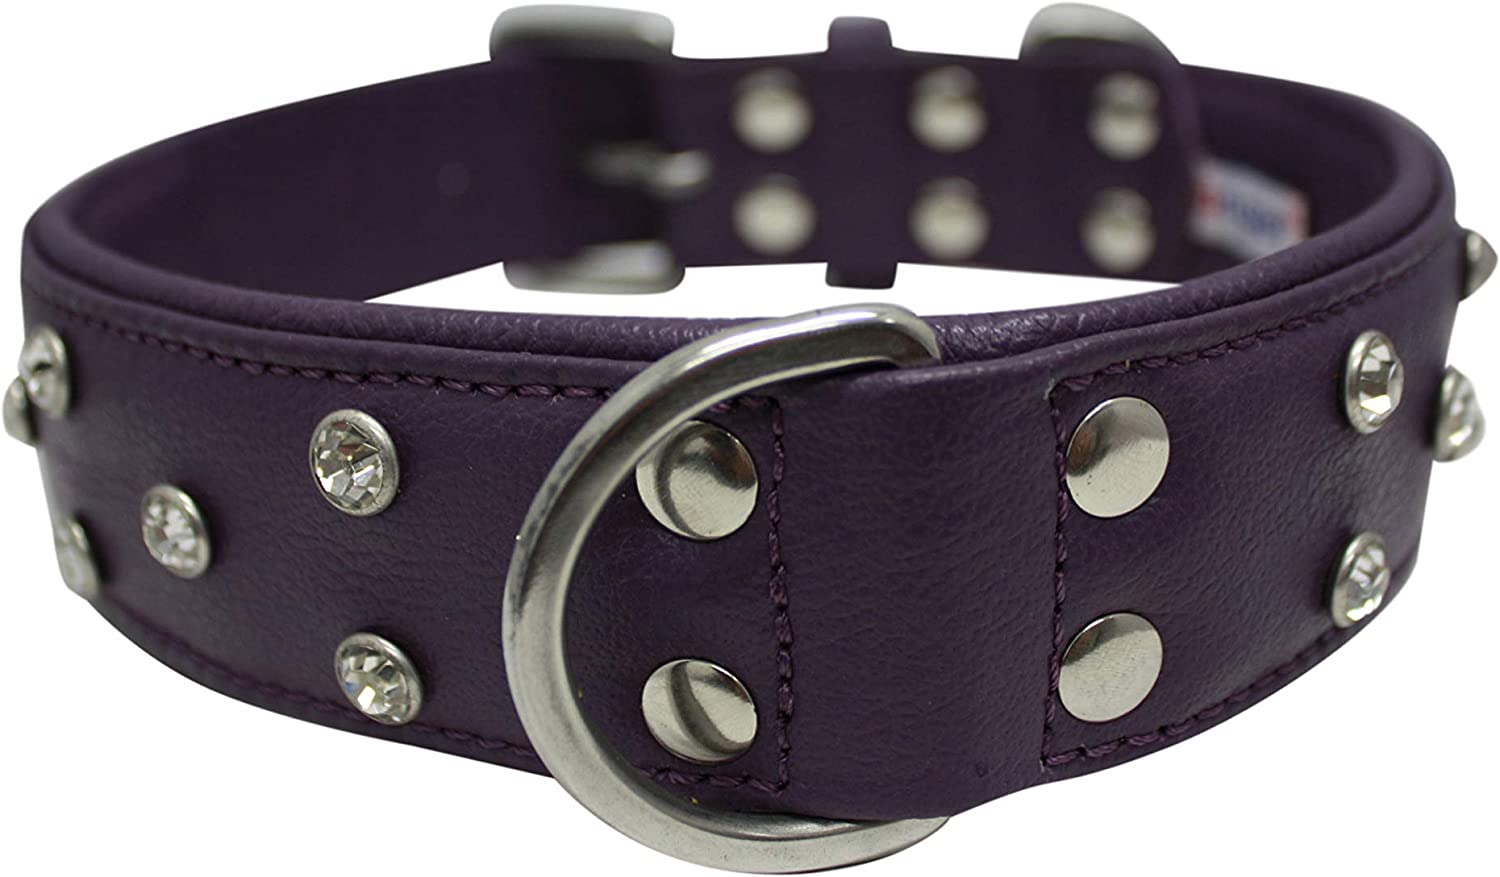 Angel Pet Supplies Inc. Rhinestones Bling Leather Dog Collar, Wide, Padded, DoublePly, Riveted Settings, 24 x1.5 , Purple, 100% Genuine Leather (Athens) Neck Size  17.5 22